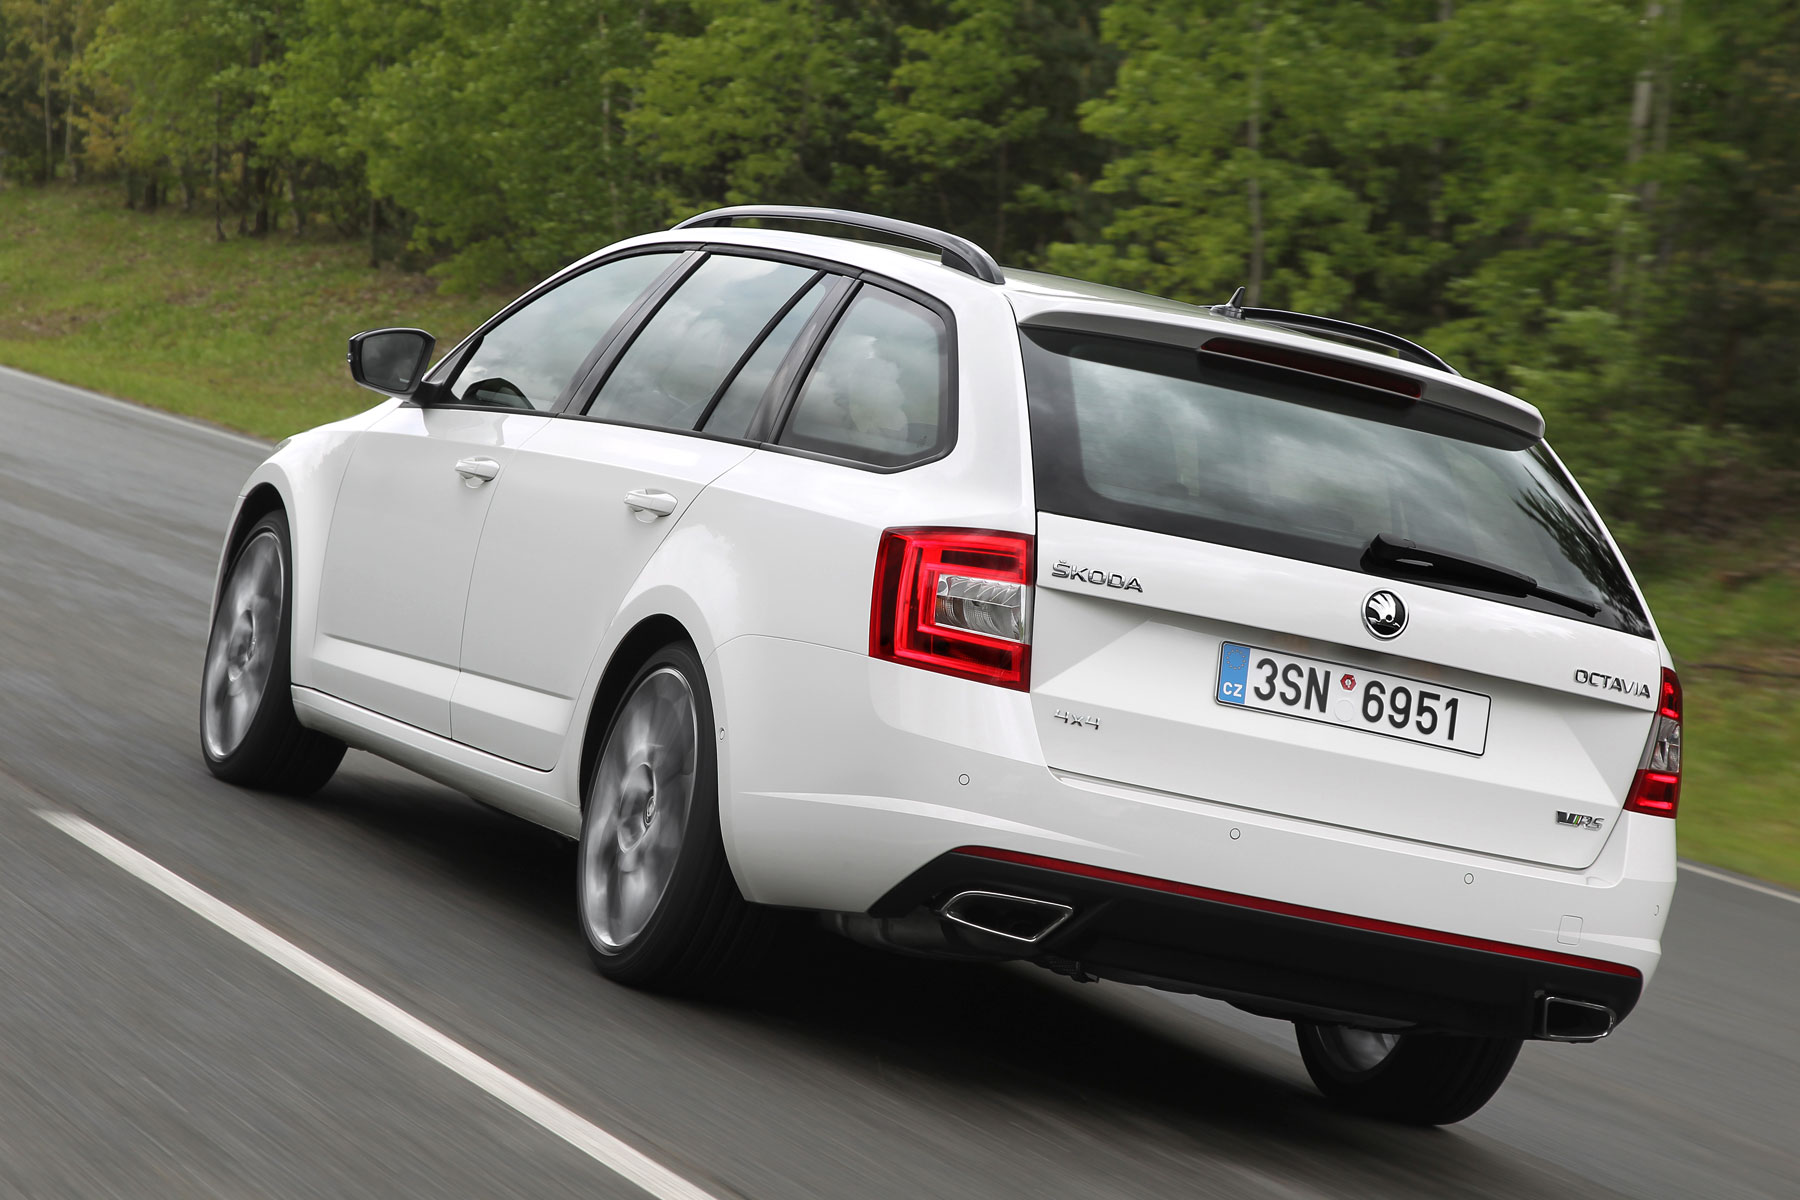 skoda octavia vrs 4x4 set for uk debut. Black Bedroom Furniture Sets. Home Design Ideas